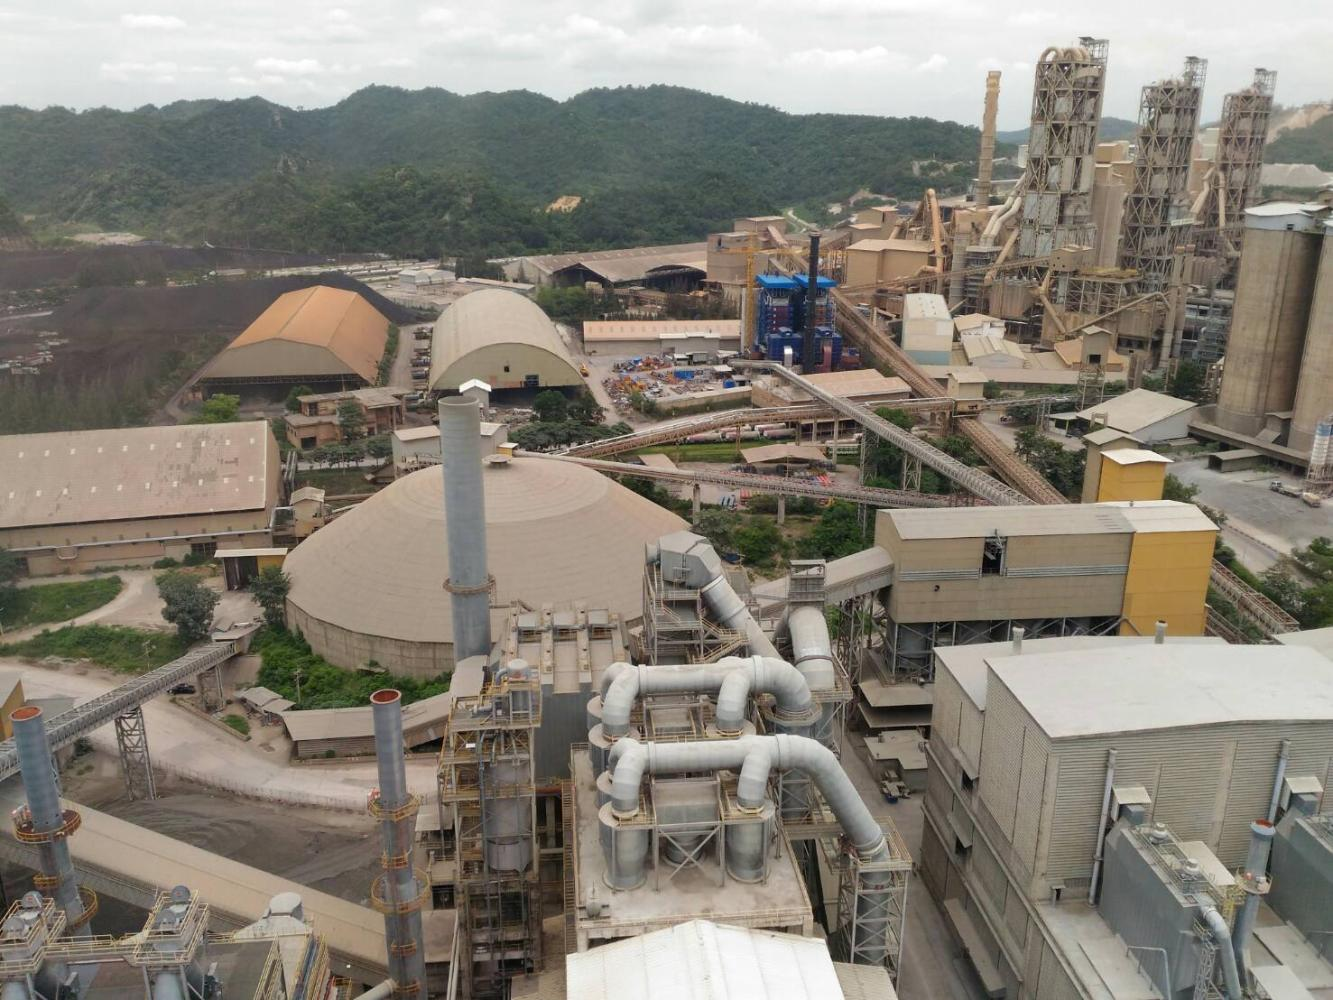 An aerial view of TPIPP's power plant in Saraburi province. The company is looking to acquire existing waste-to-energy projects.